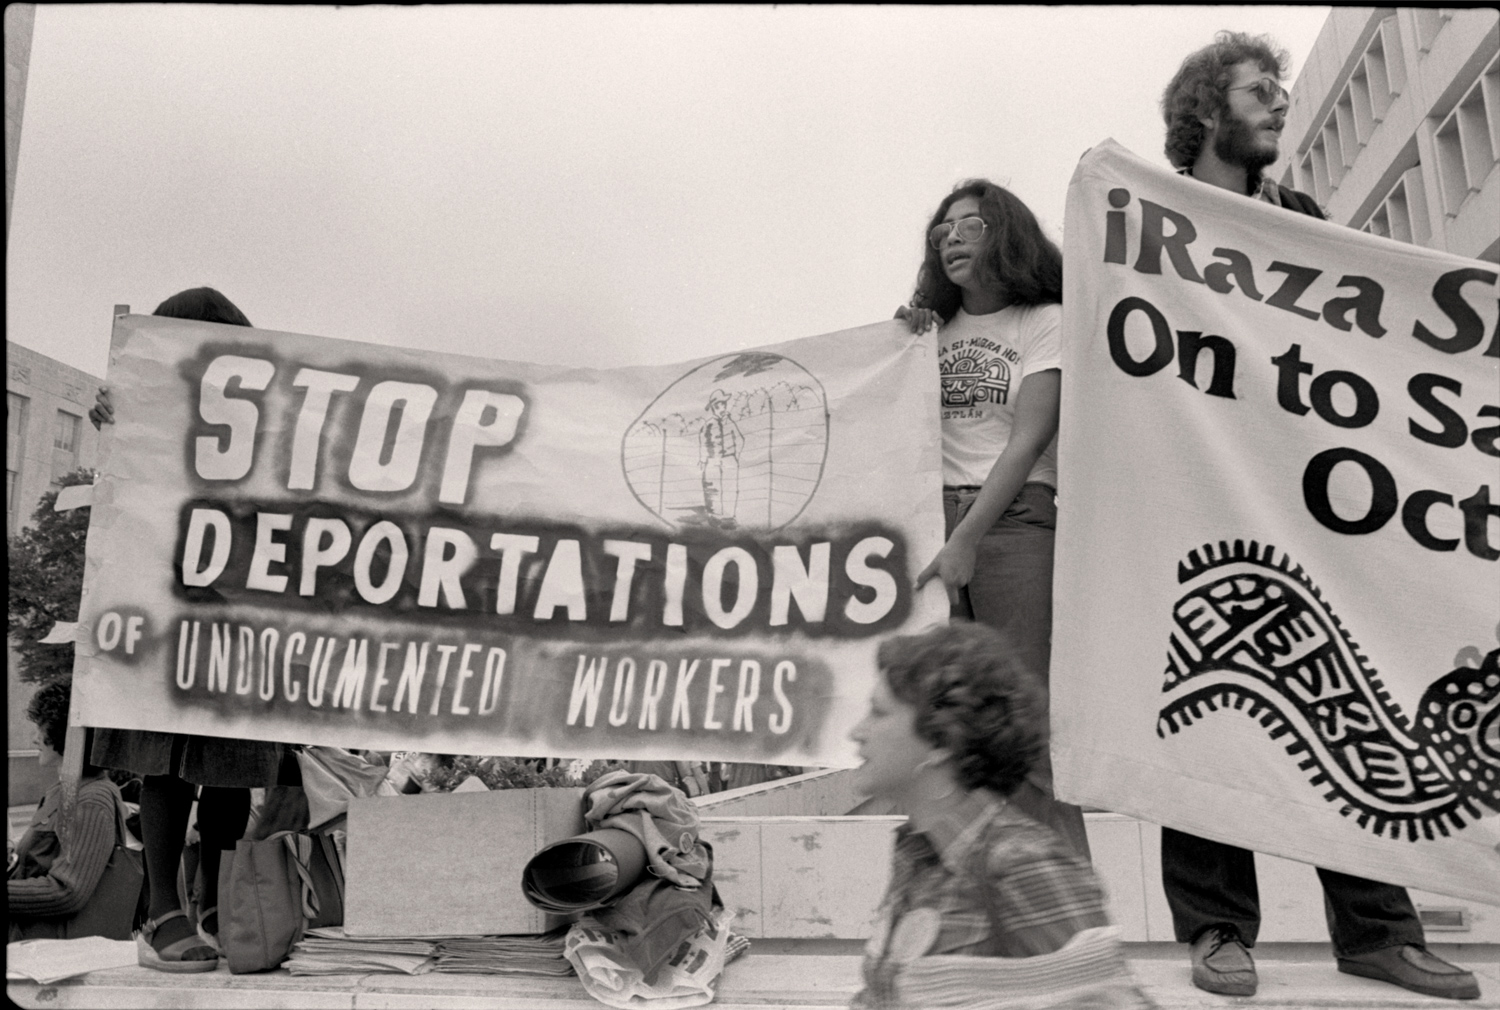 "Houston, 1977 - Outside the Convention Center, large groups demonstrated in support of the rights of immigrants a undocumented workers, who were being exploited and used as a political tool. Ray Marshall, US Secretary of Labor warned in 1977, with regard to discussion of immigration policy, ""there's the danger that some demagogue will feed popular fears."""